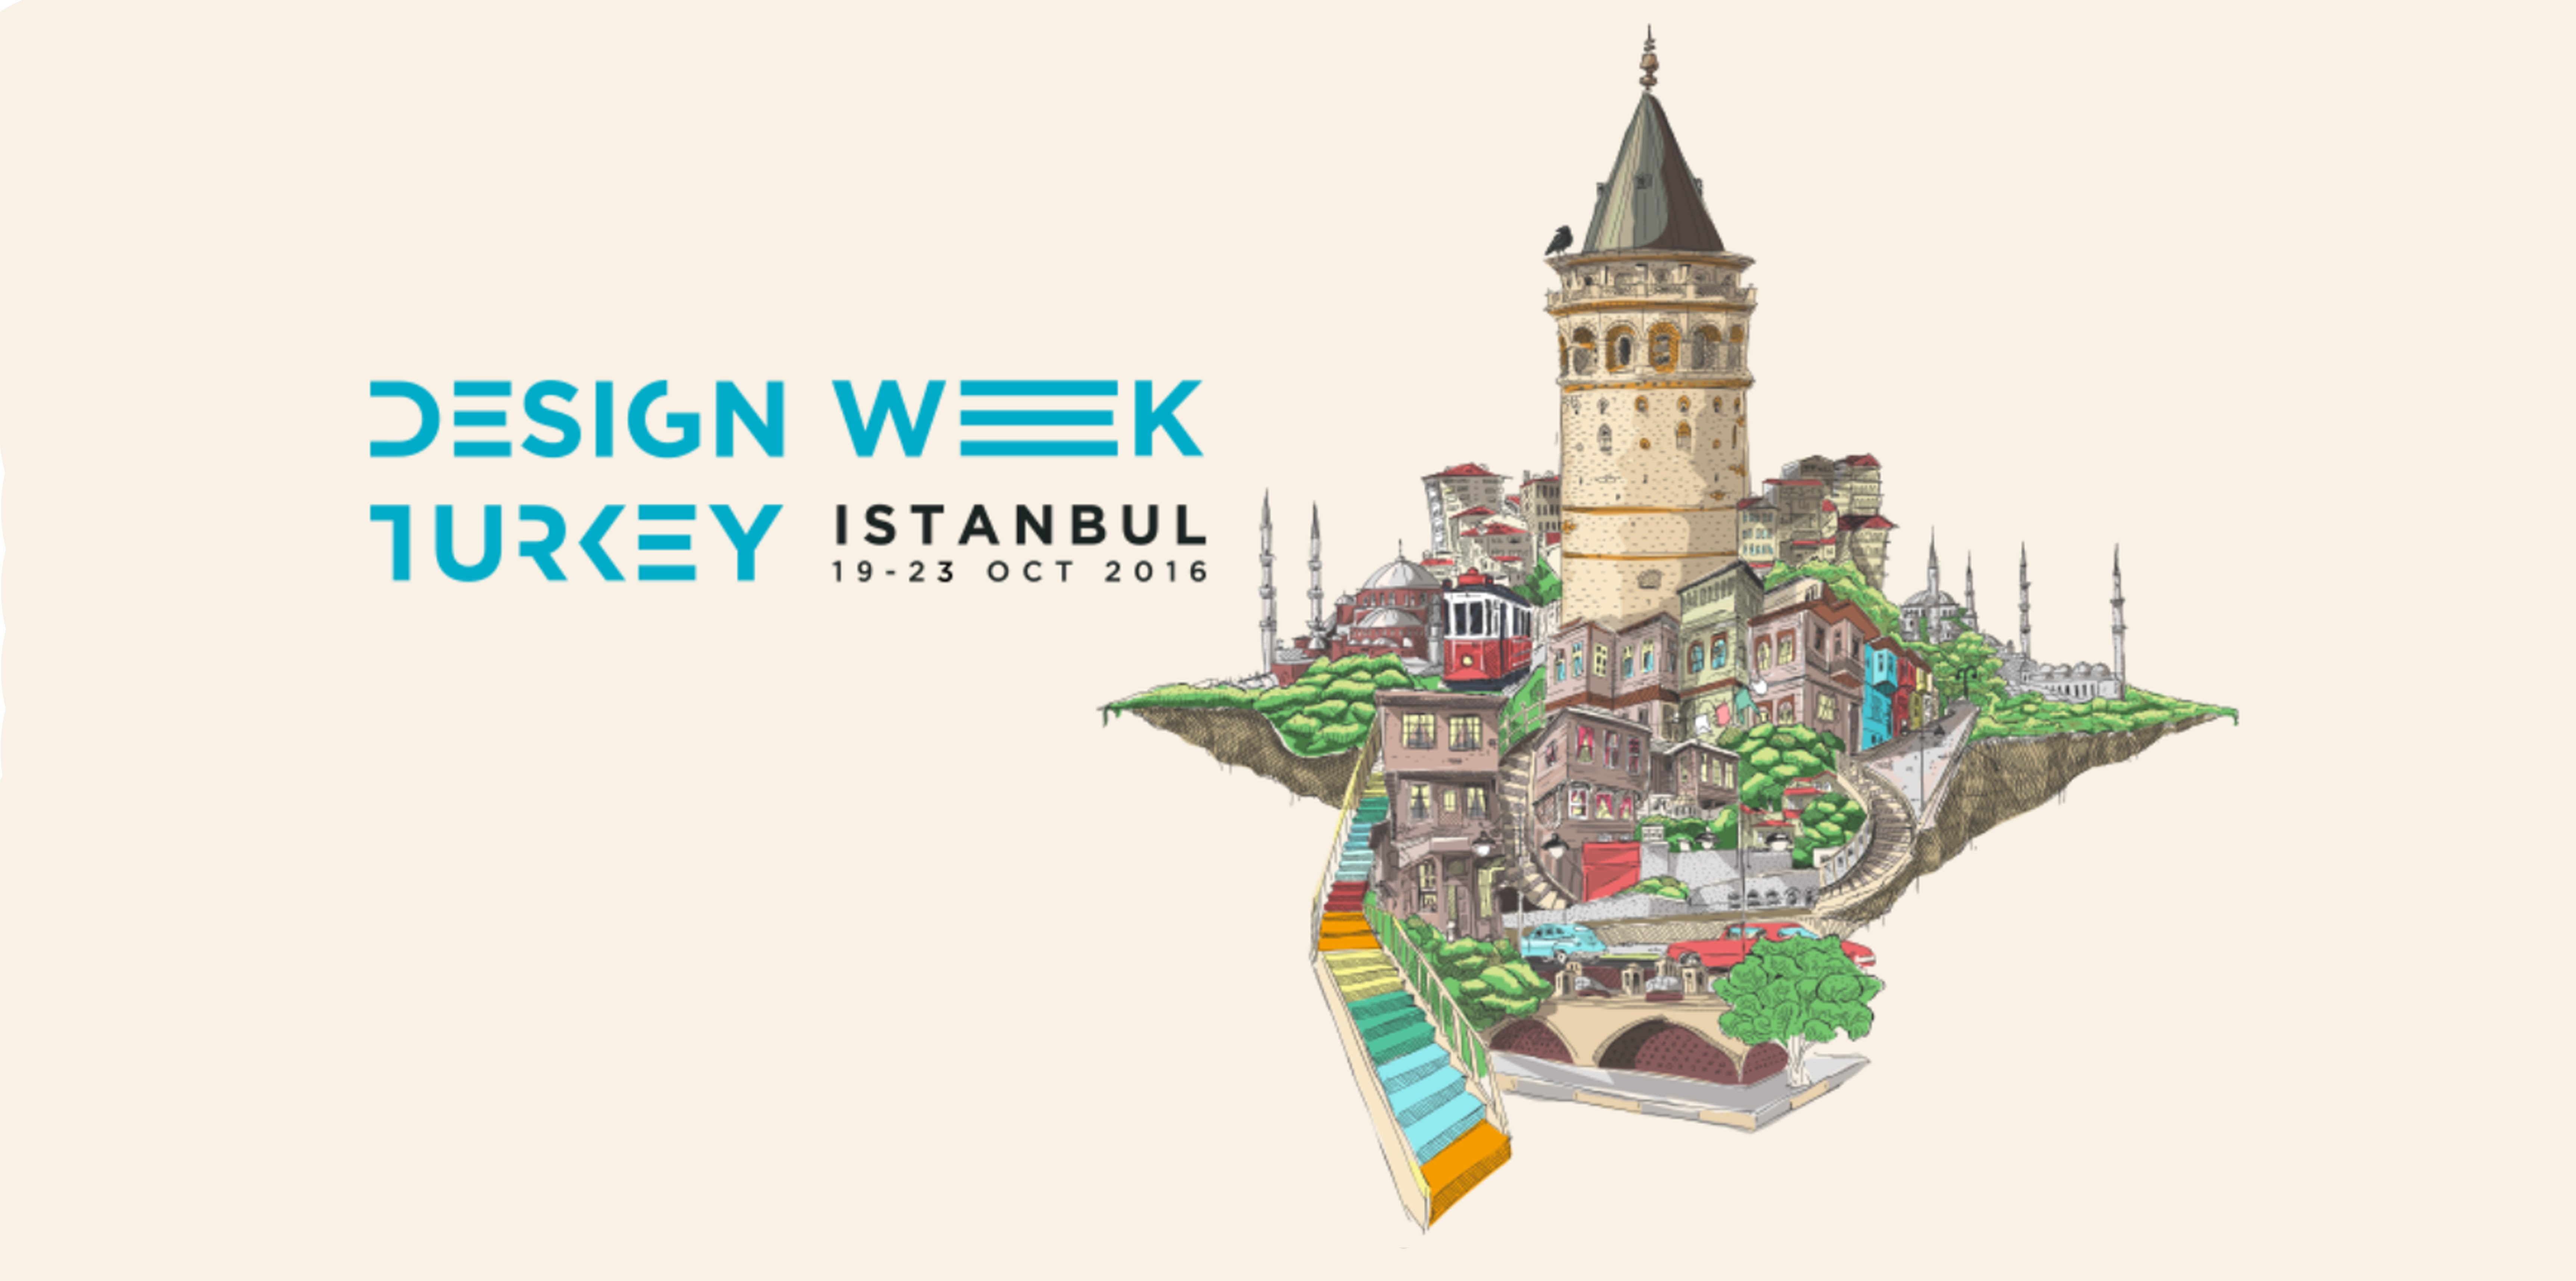 Design Week Turkey 2016 Begins